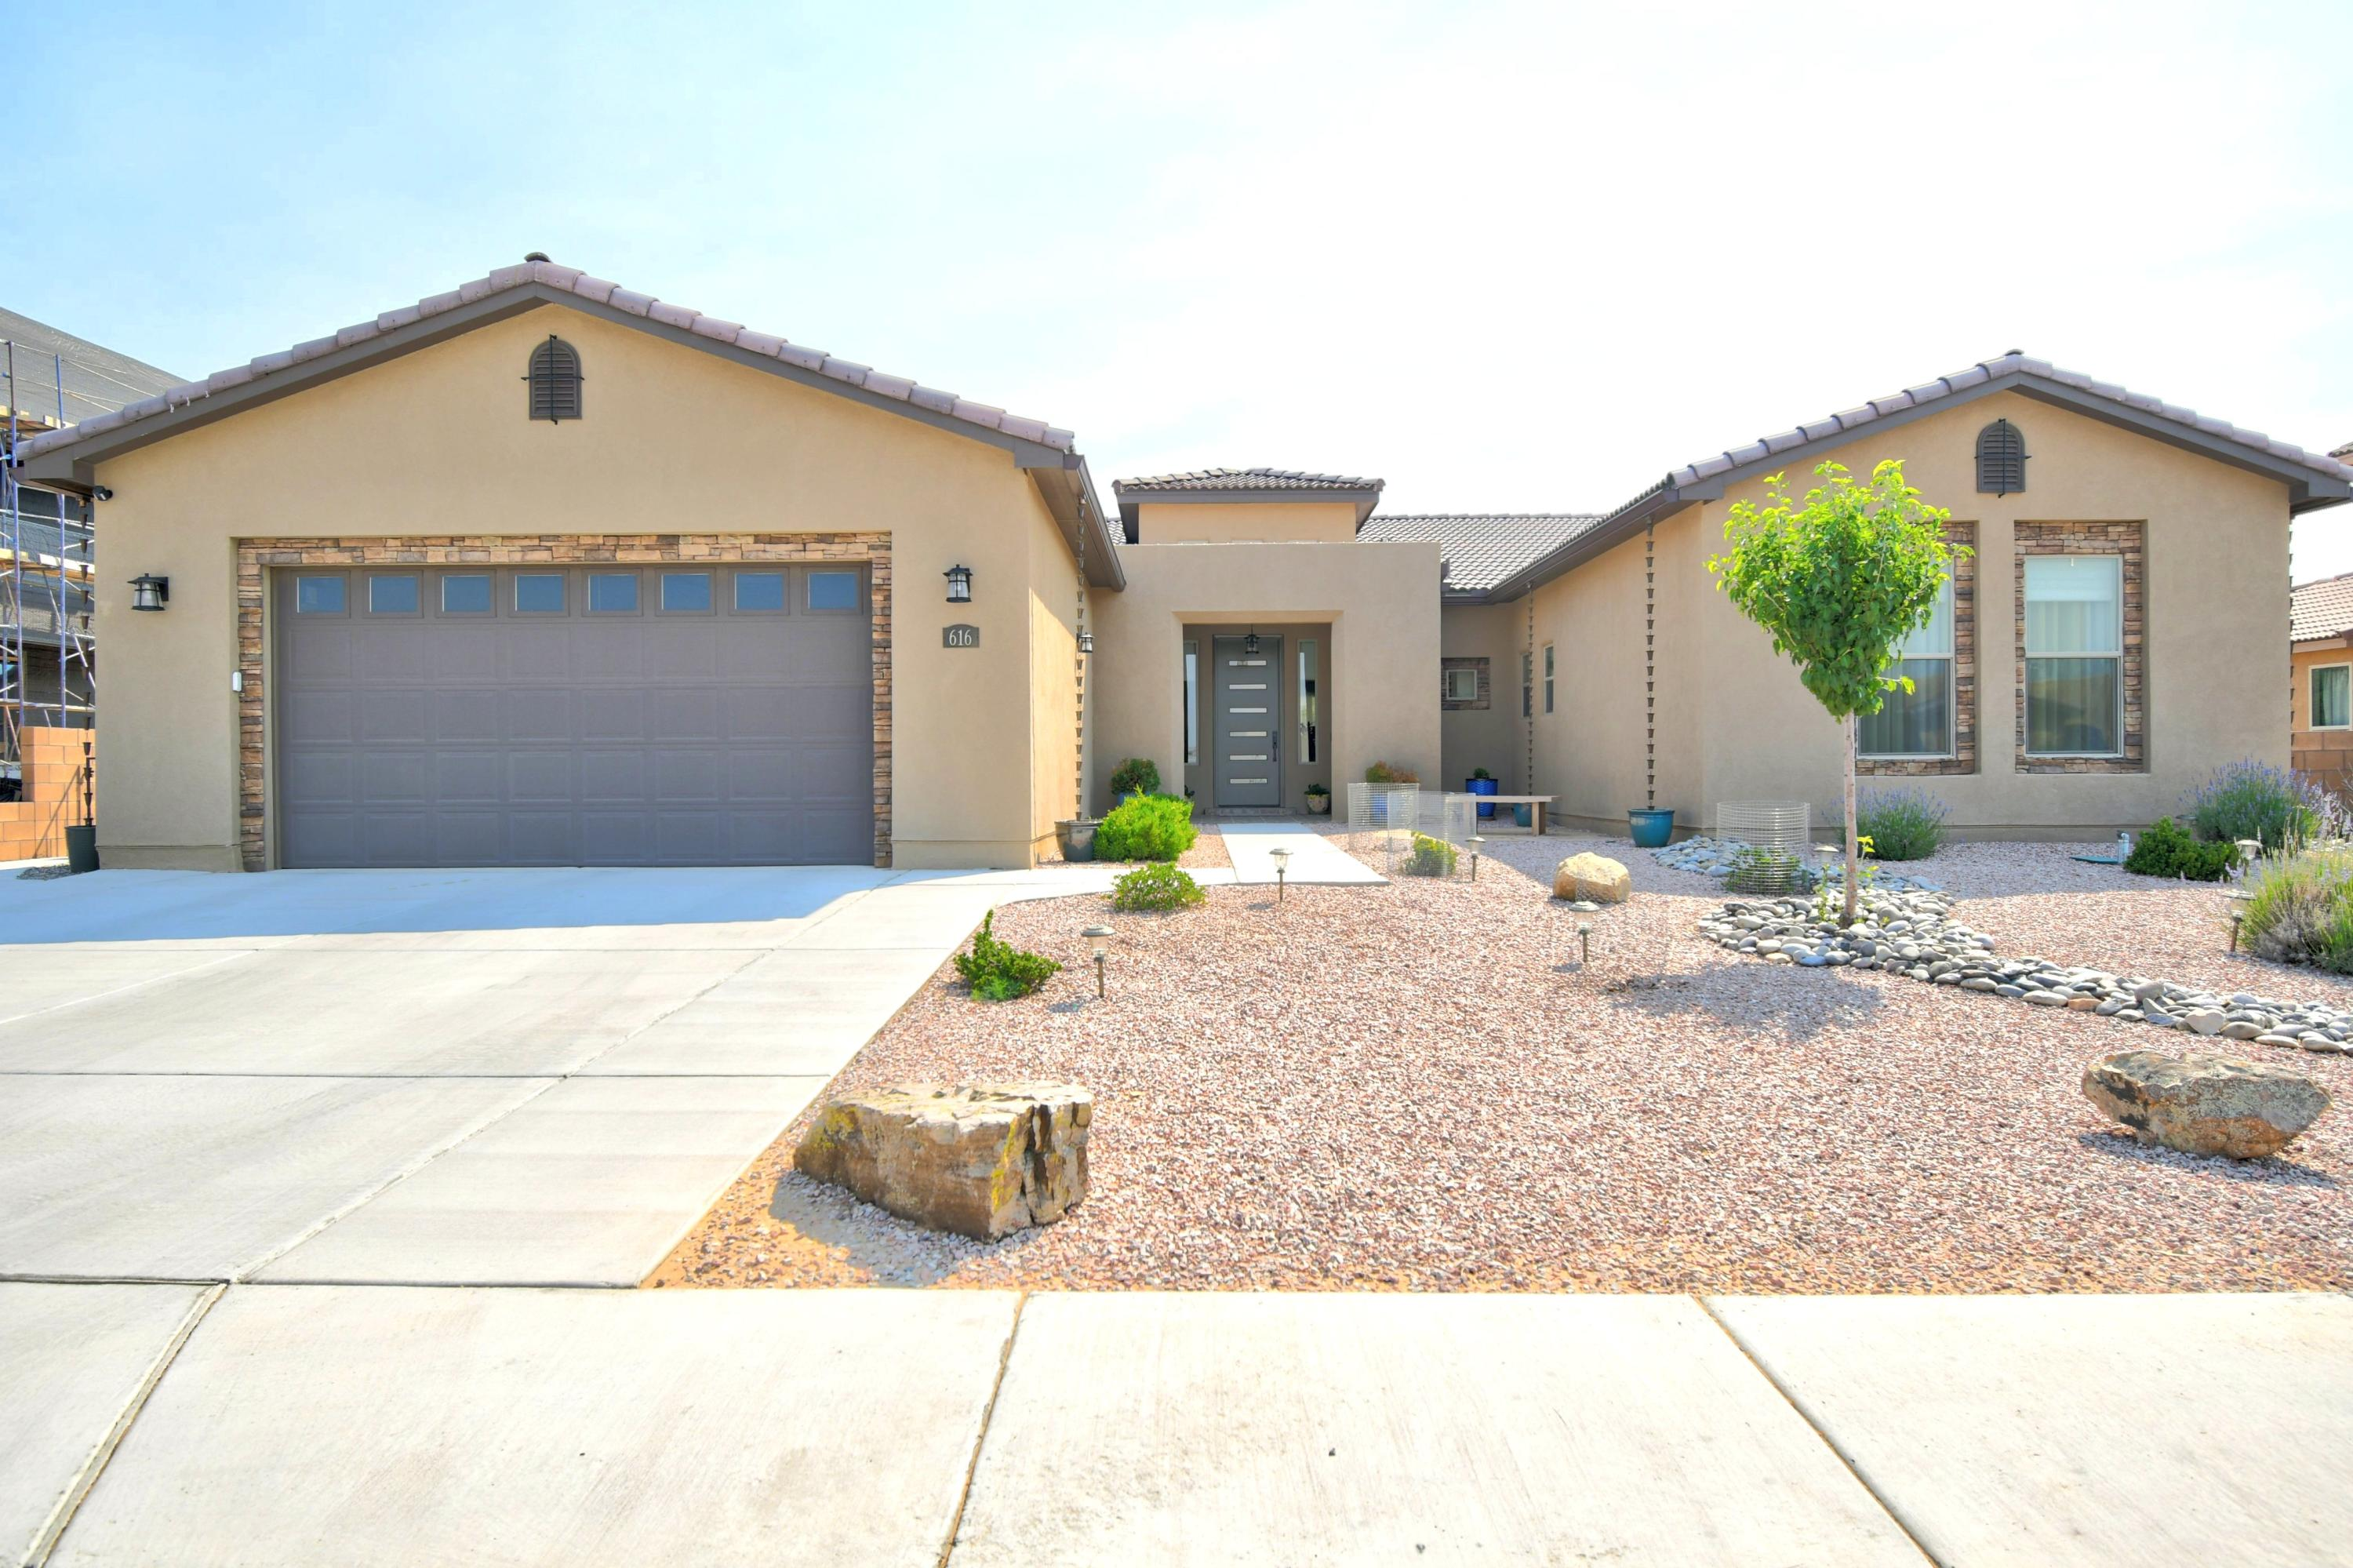 616 TIWA Lane NE Property Photo - Rio Rancho, NM real estate listing